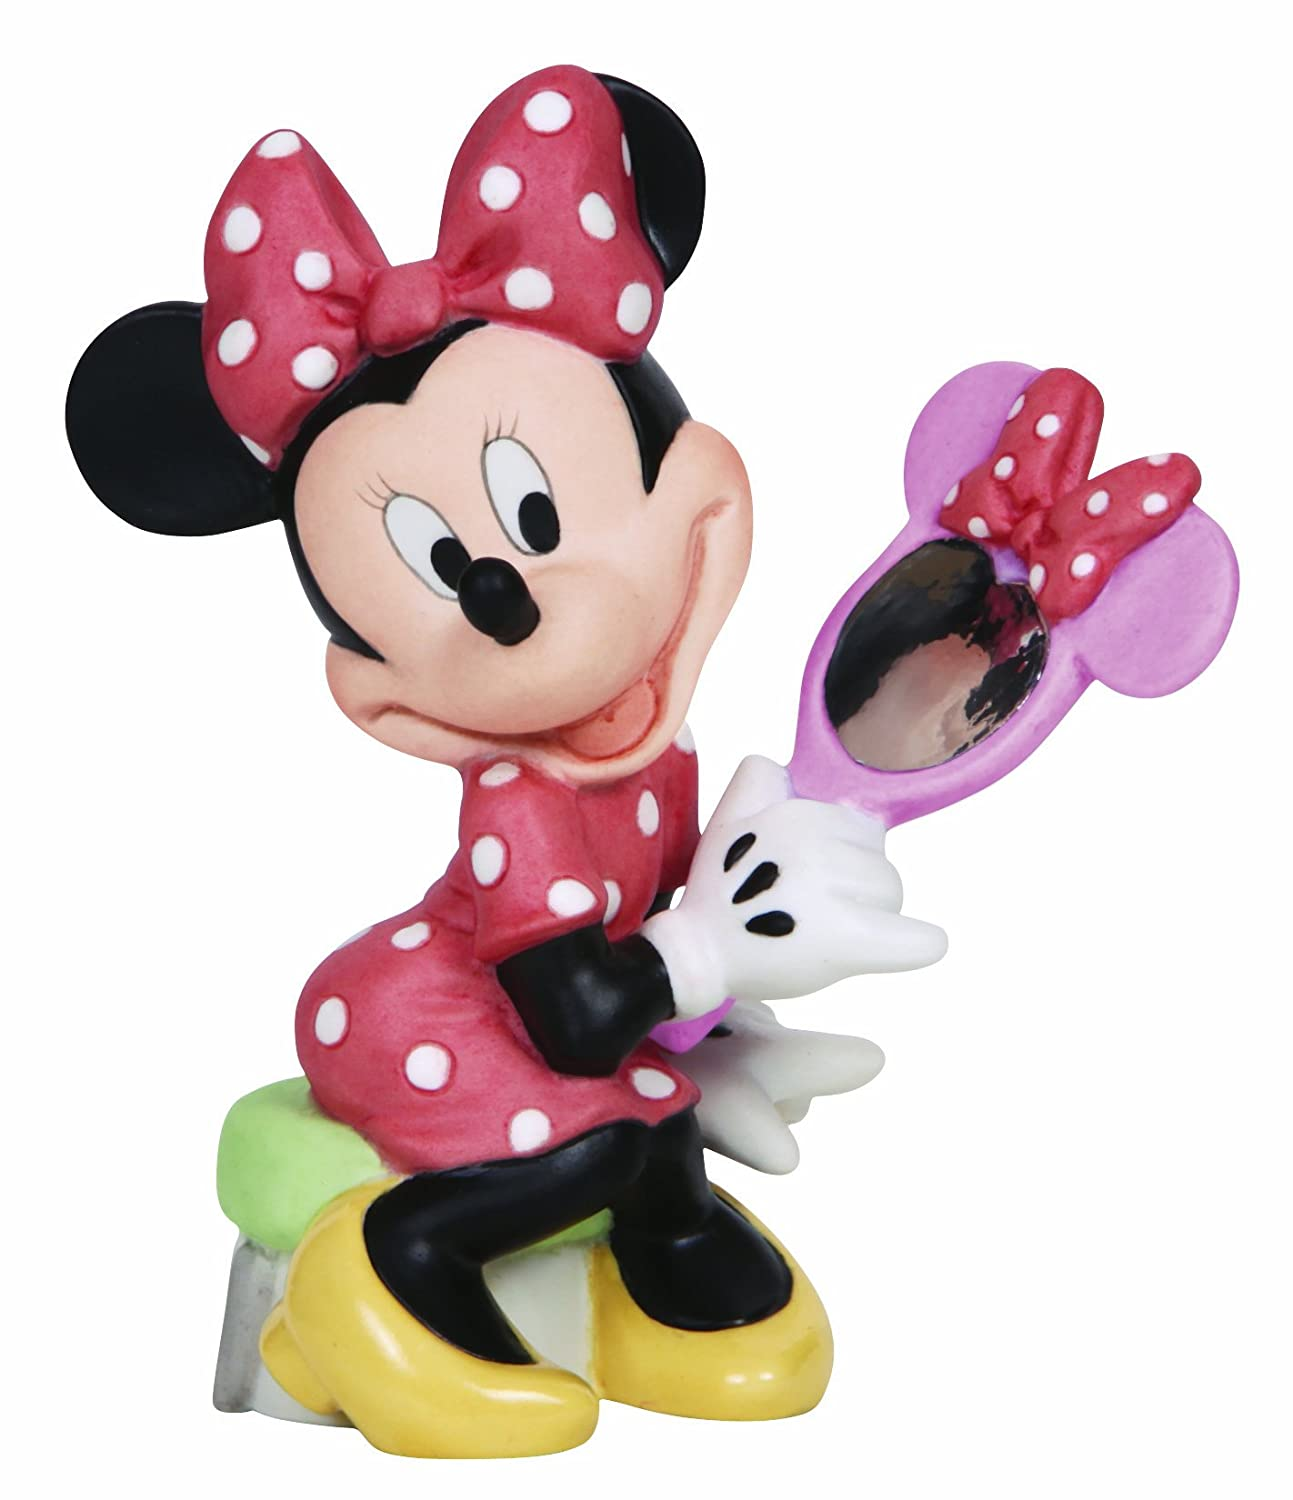 Precious Moments Disney Showcase Collection 134700 Precious Moments Inc. Your Beauty Shines From The Heart Bisque Porcelain Figurine